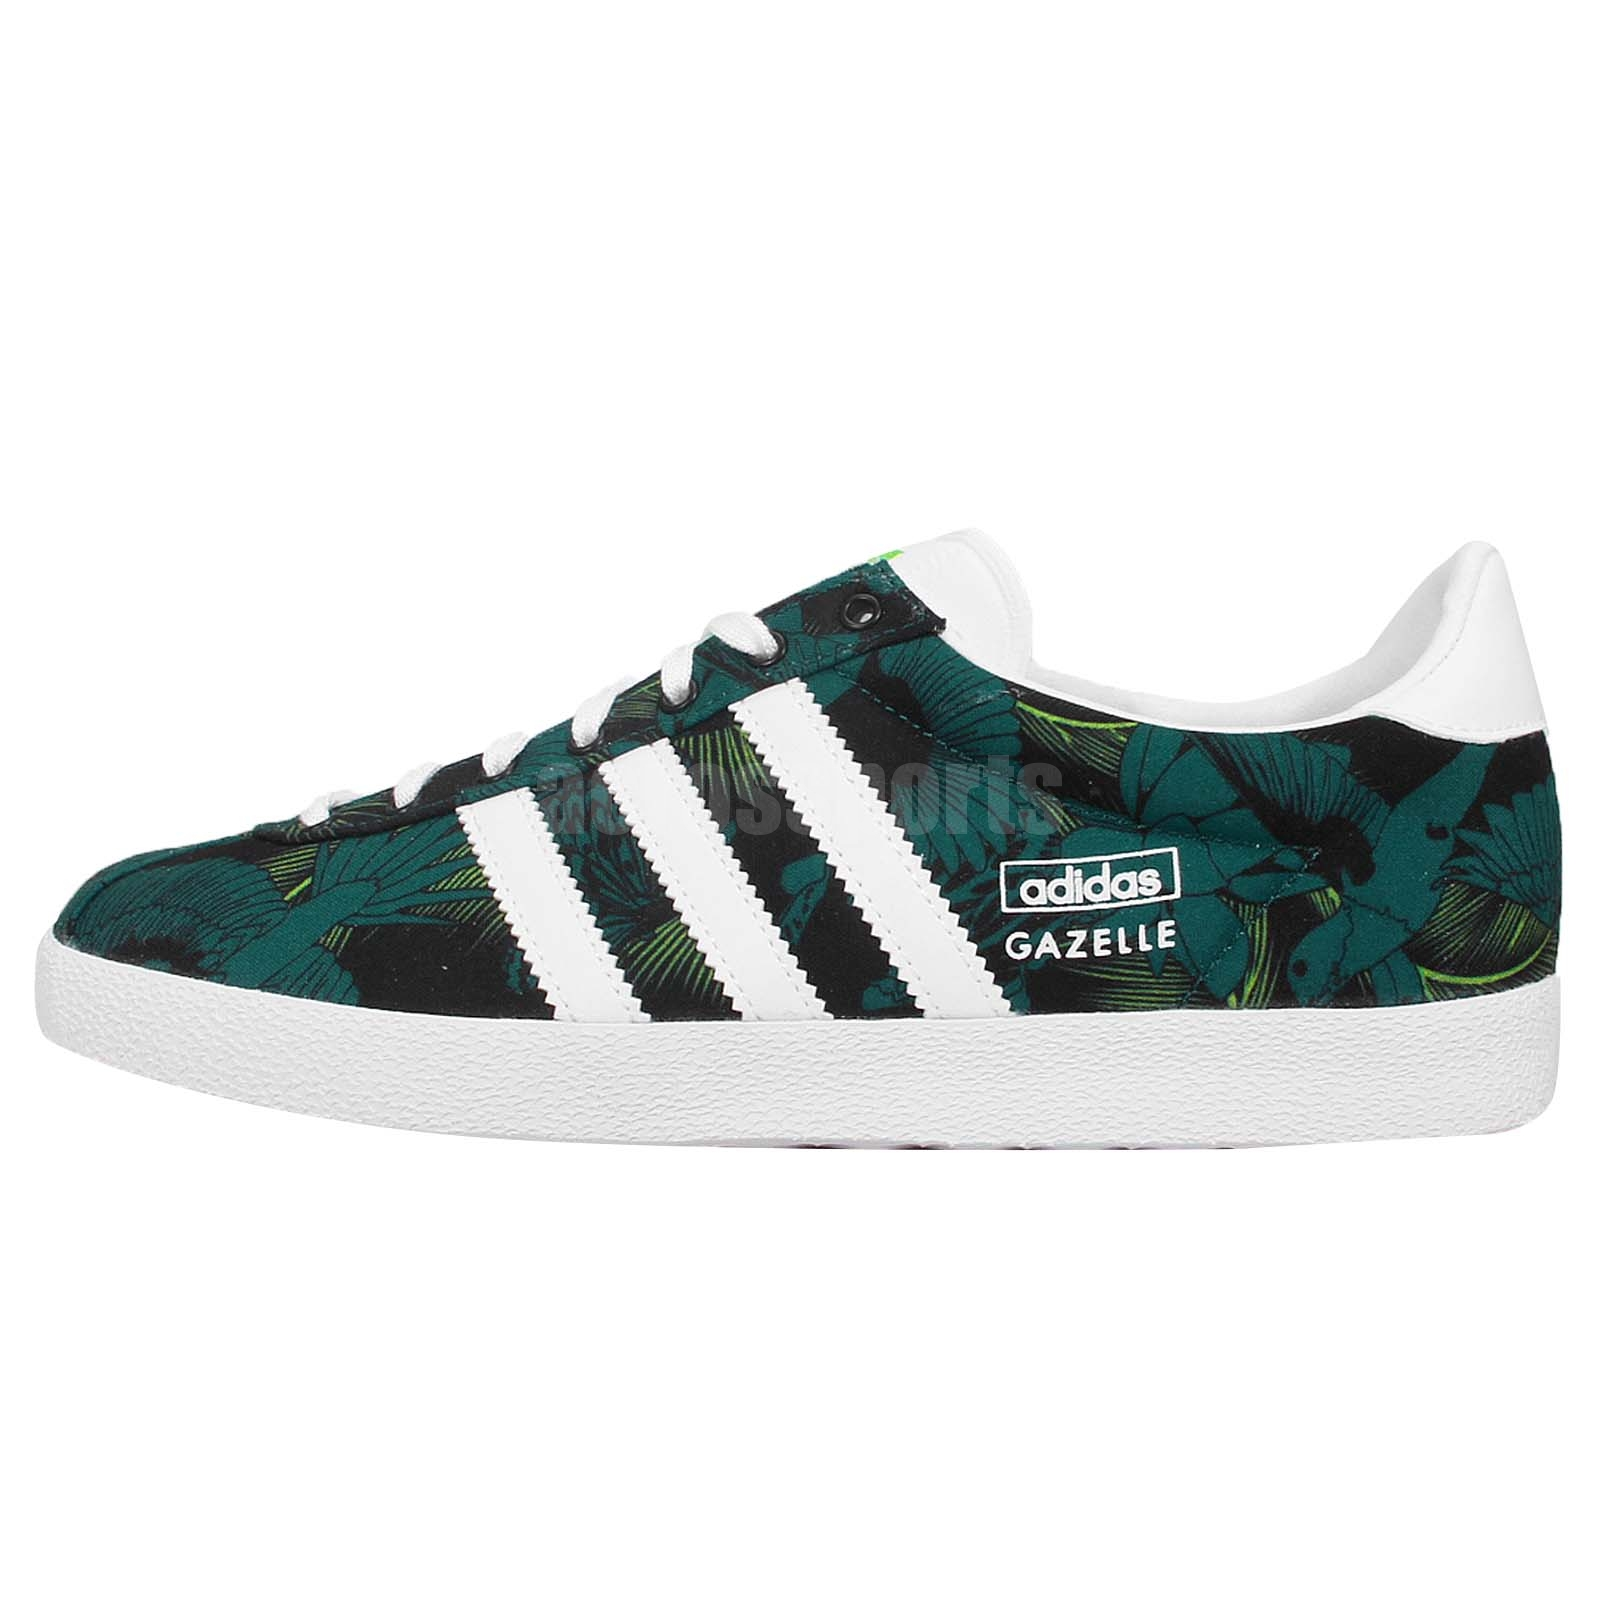 adidas Originals Gazelle OG W Green White Floral Womens Shoes Sneakers M19561